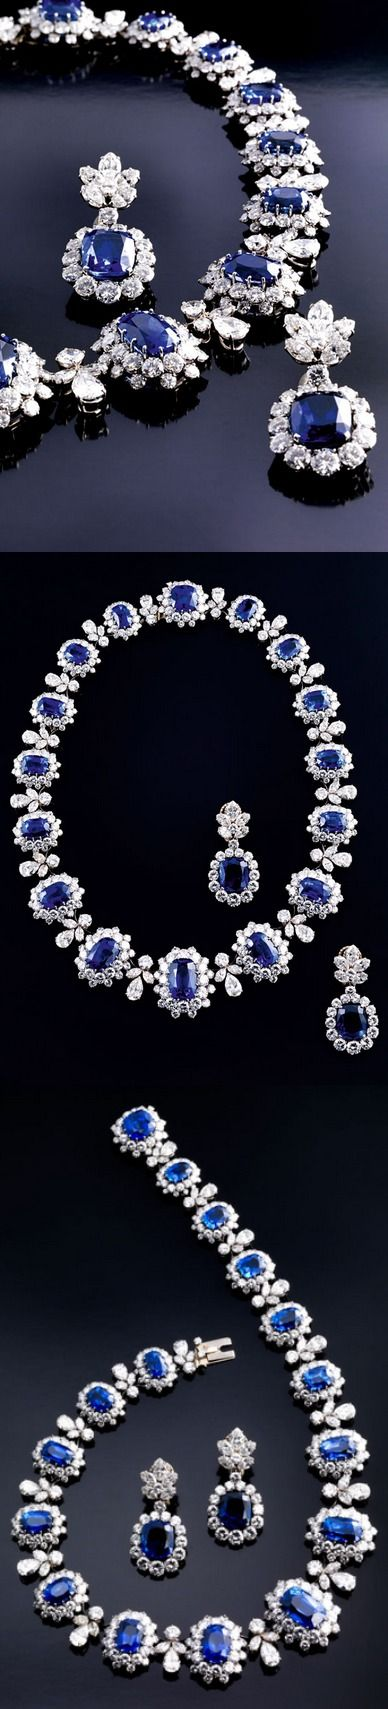 Diamond  sapphire necklace  earrings, Bulgari. Beauty & Personal Care - luxury beauty gift sets - http://amzn.to/2ljmWg3